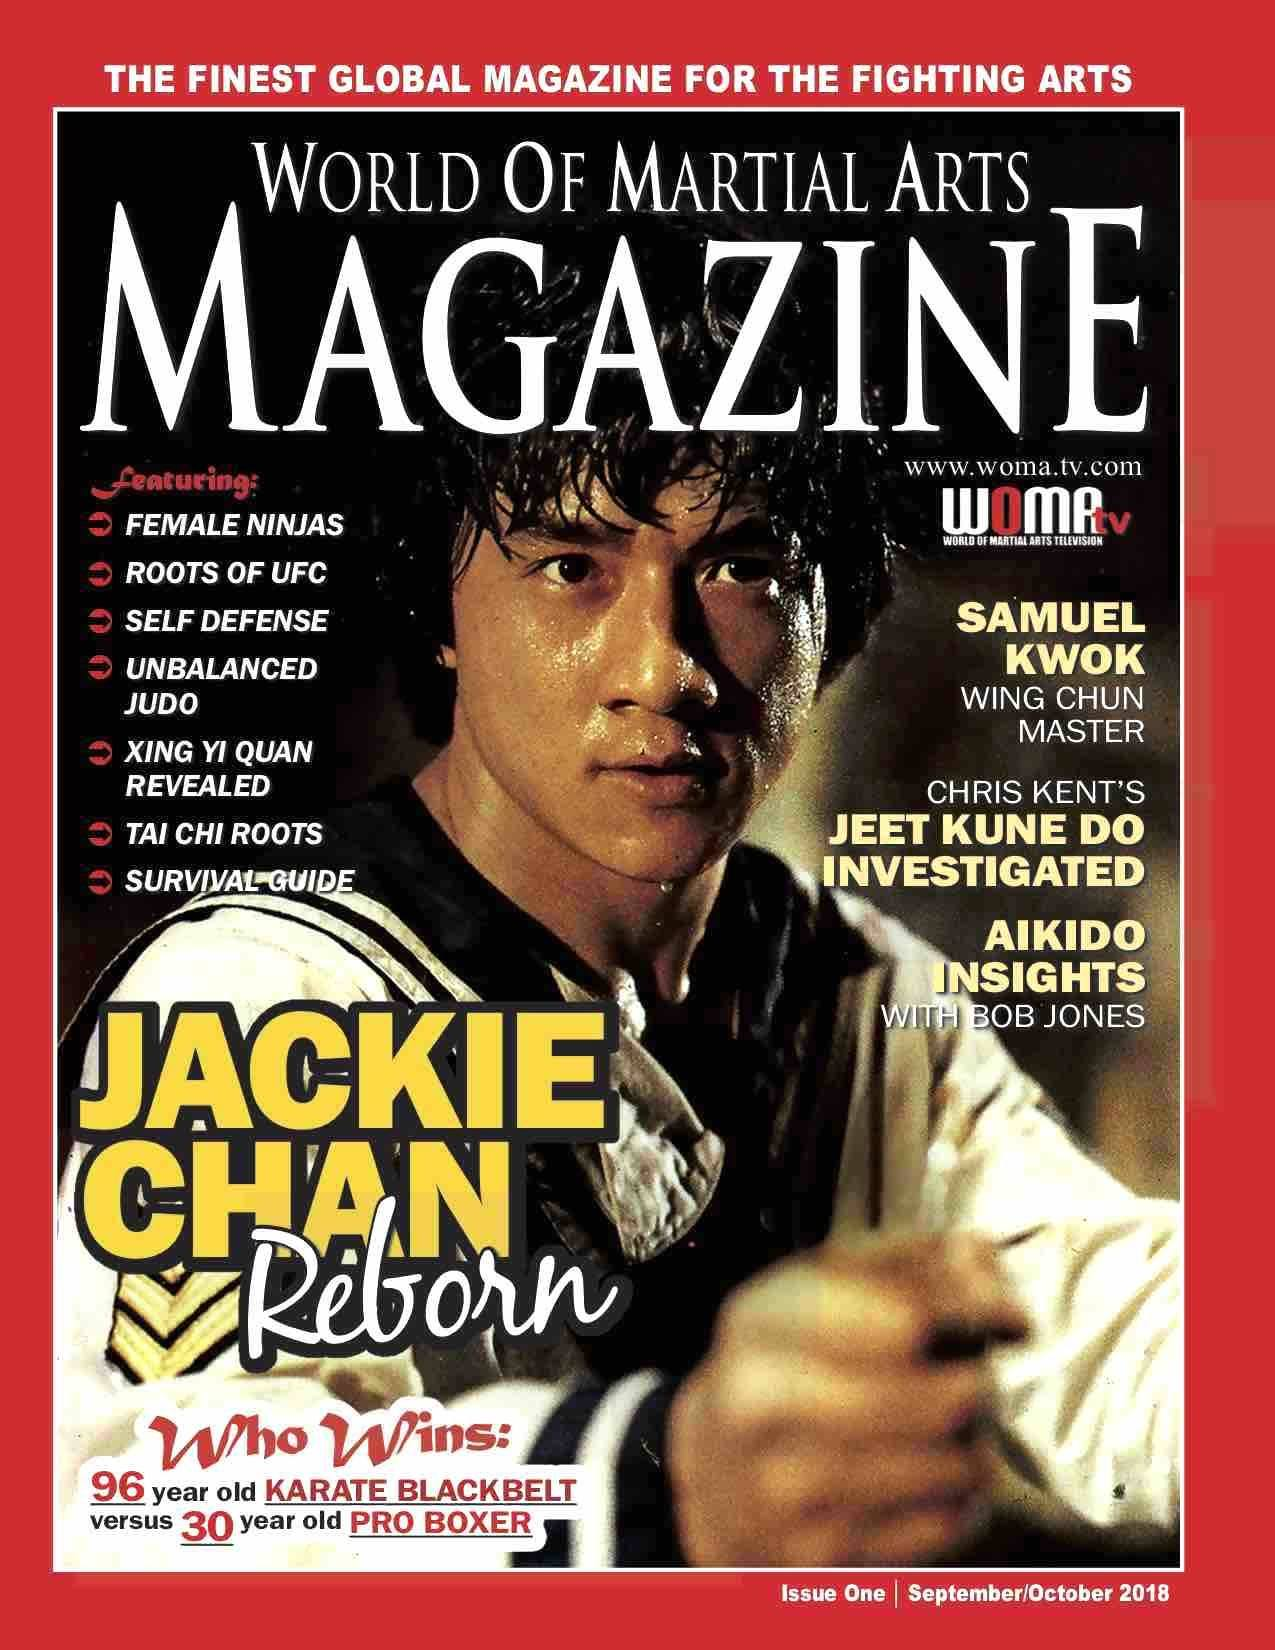 Jackie Chan features in Issue 1 World of Martial Arts Magazine